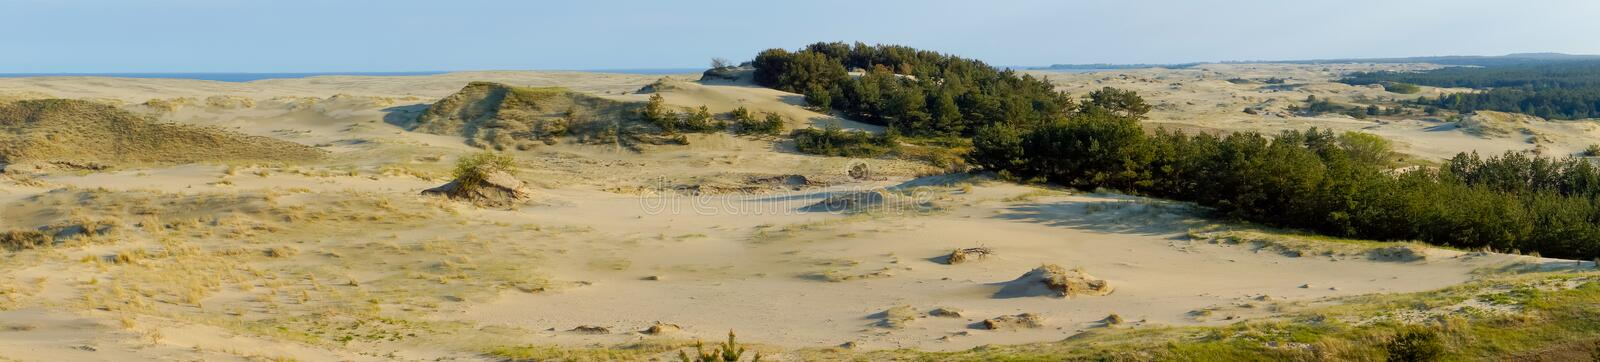 Curonian Spit. Dunes on the Curonian Spit royalty free stock images